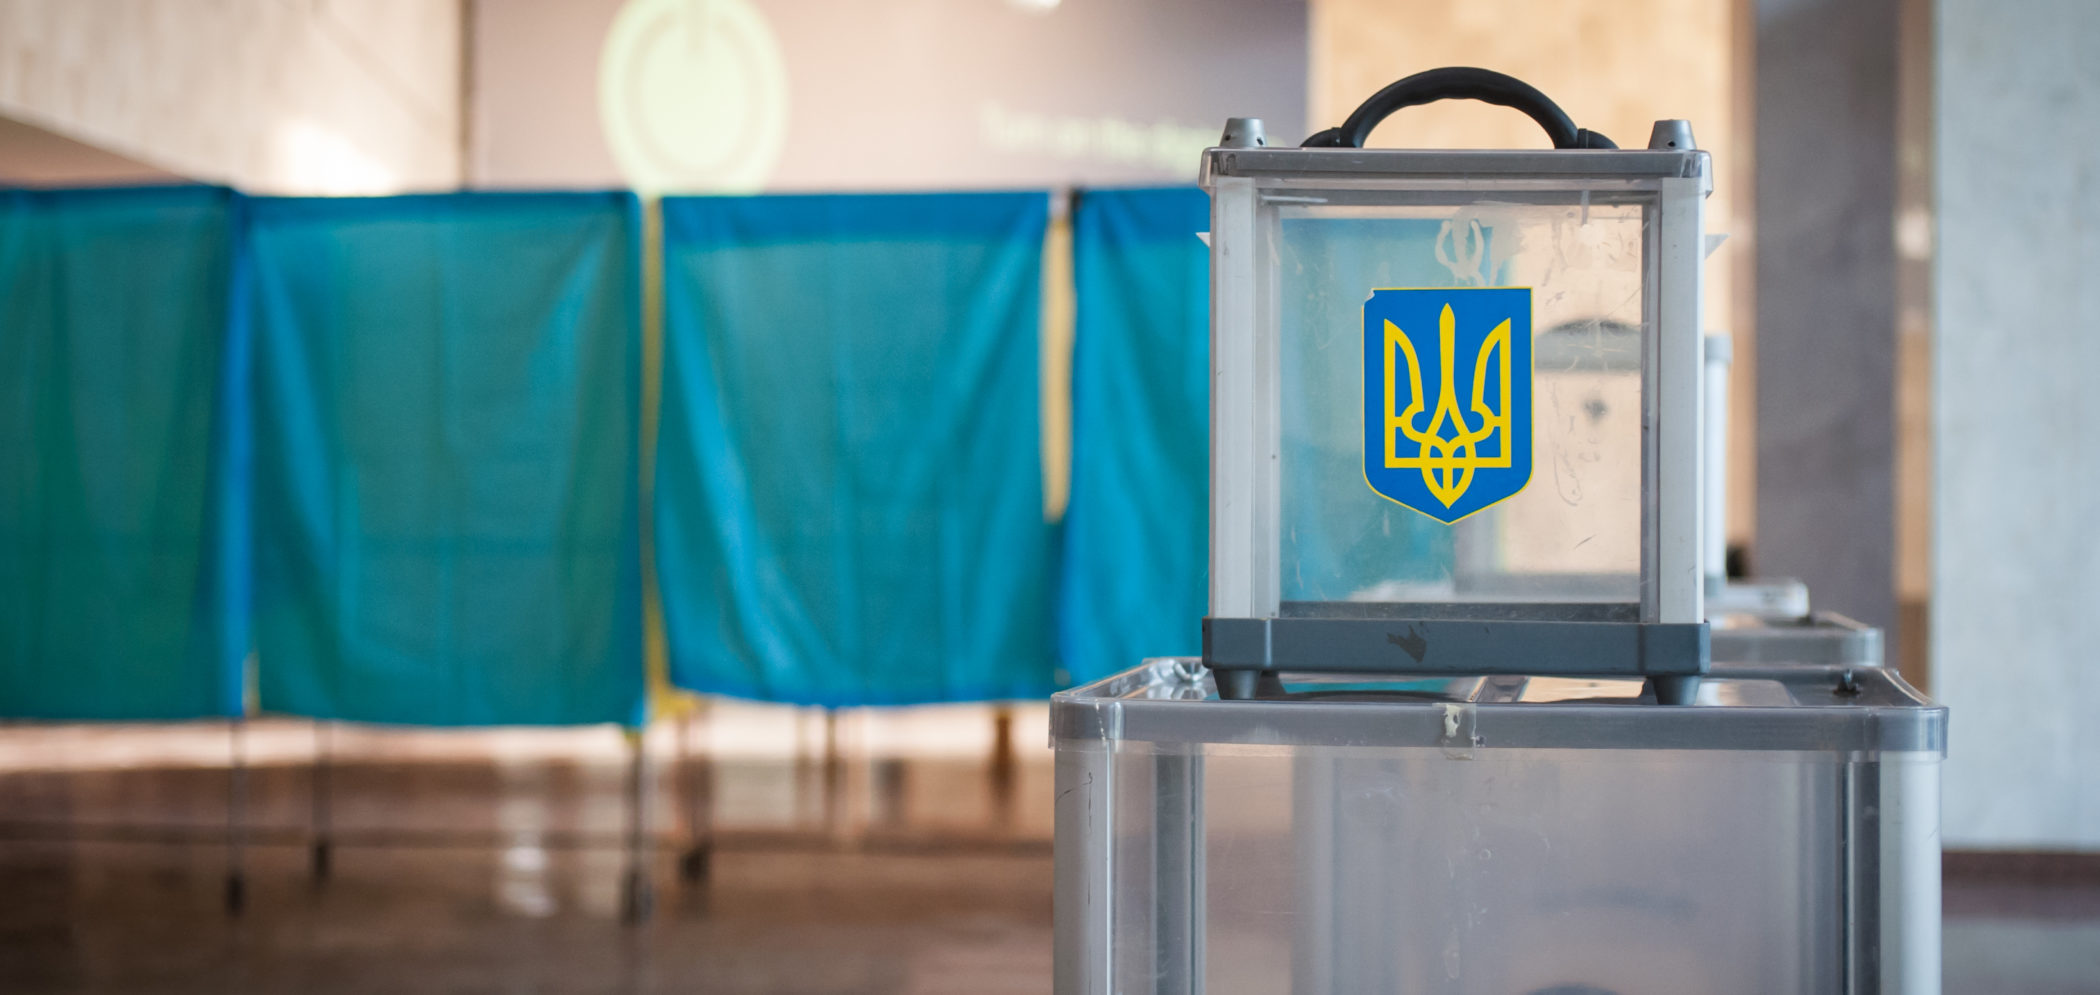 Ukraine's parliament appoints 17 new members of the Central Election Commission